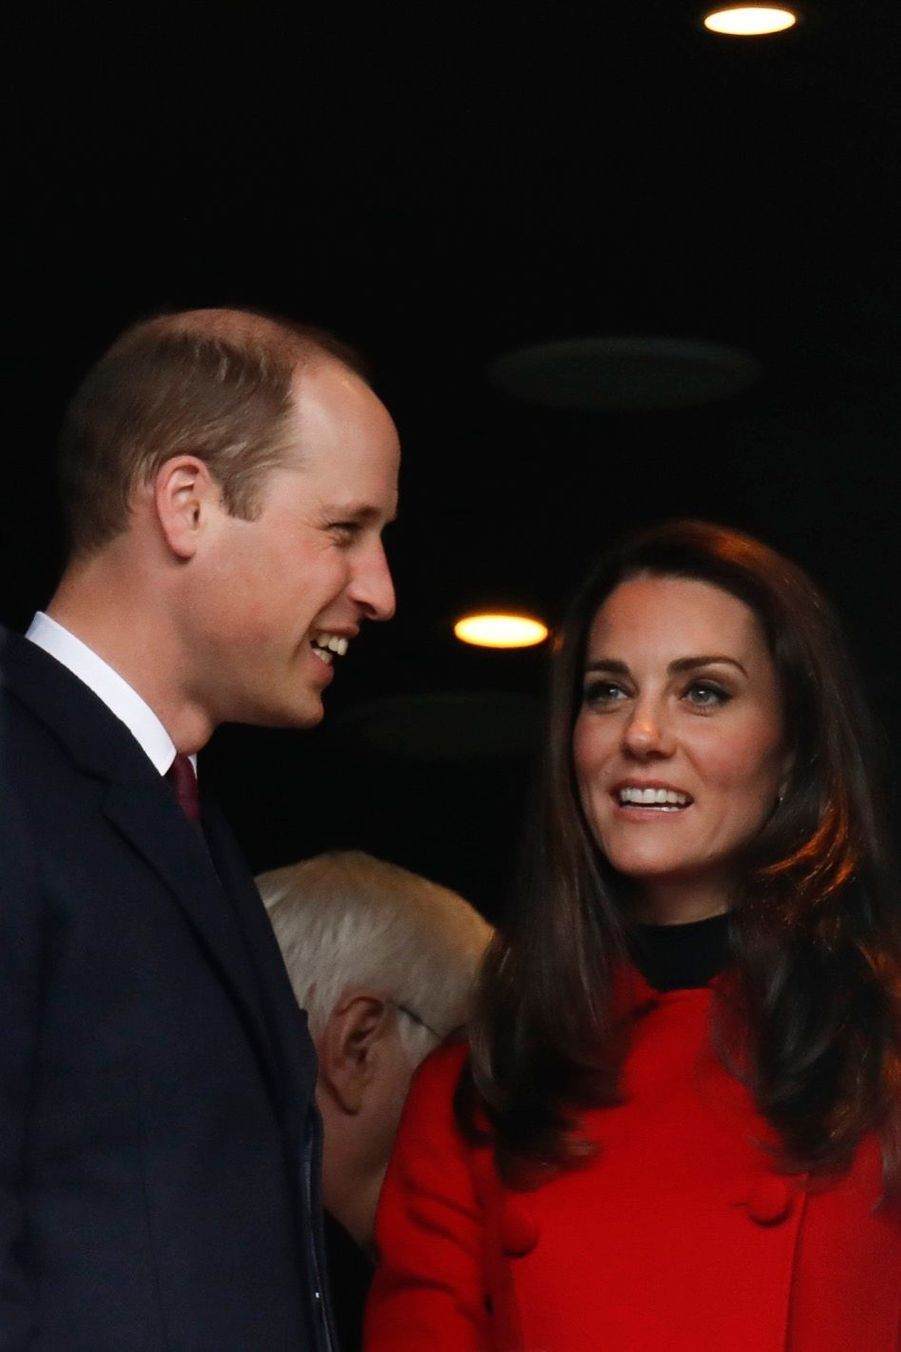 Kate Middleton Et Le Prince William Au Stade De France Pour Le Match De Rugby France Pays De Galles 3